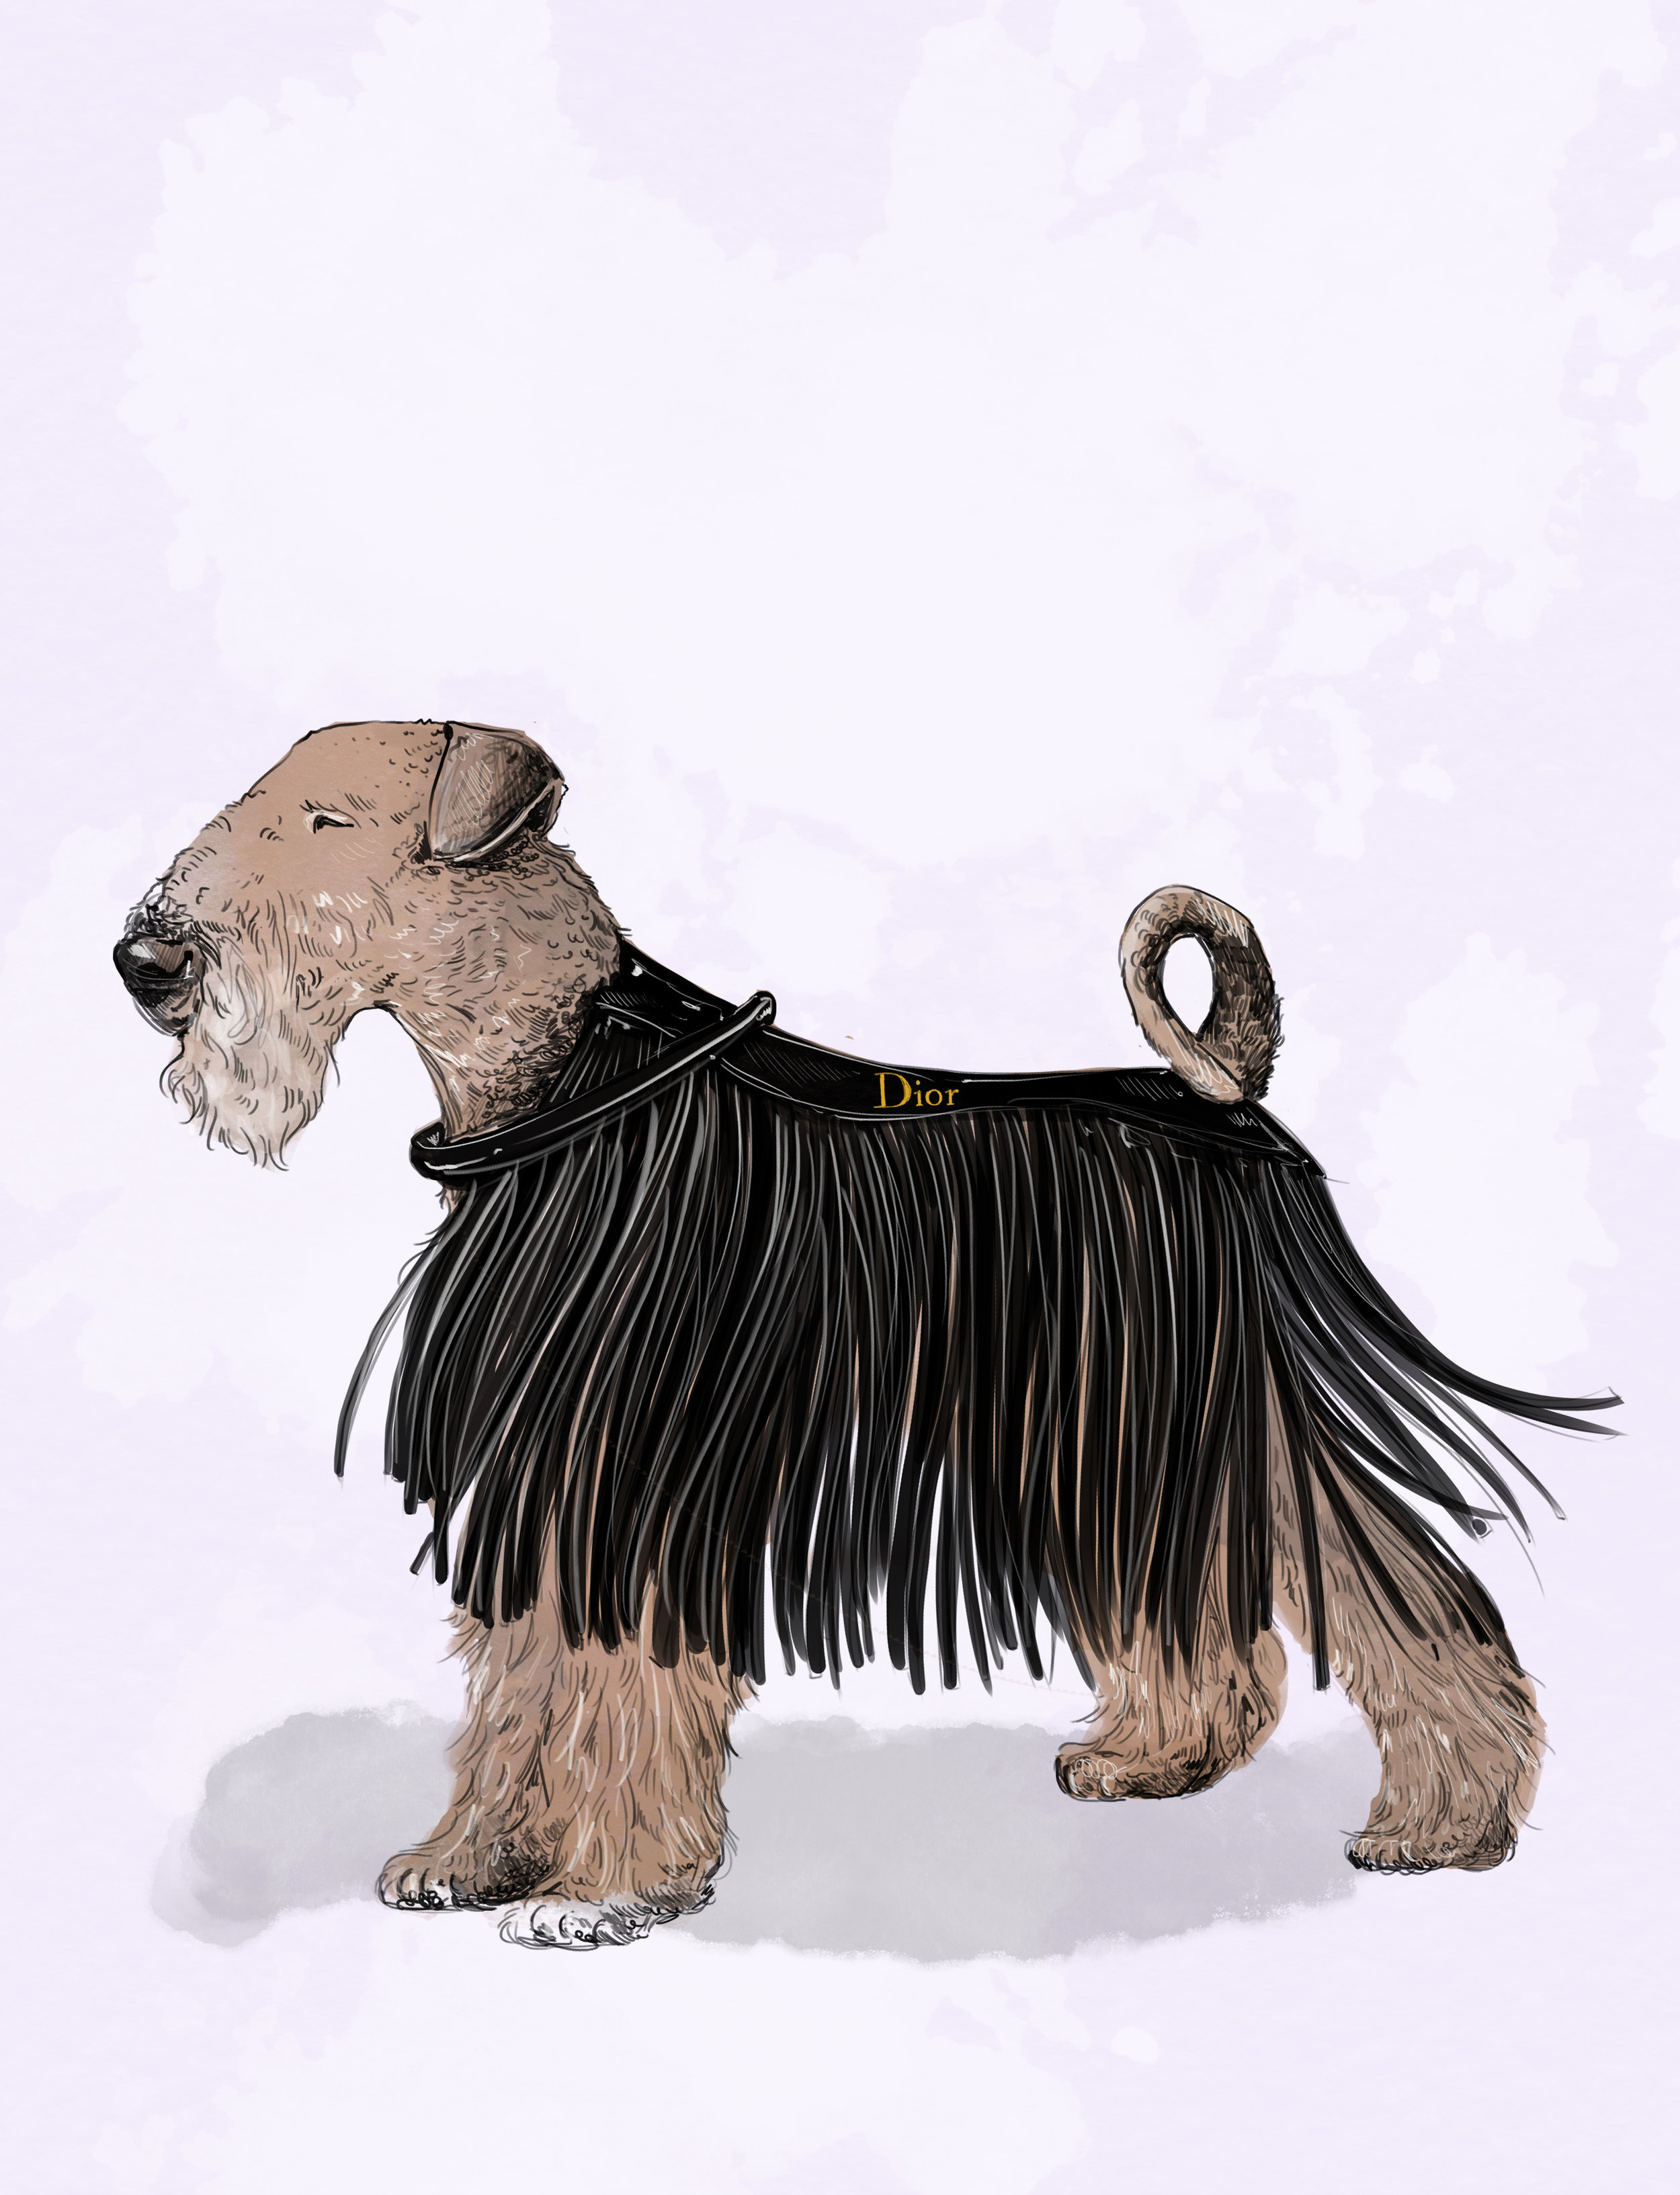 DIOR bag and SCANDINAVIAN LABORSKI canine | Illustrated by Amber Day